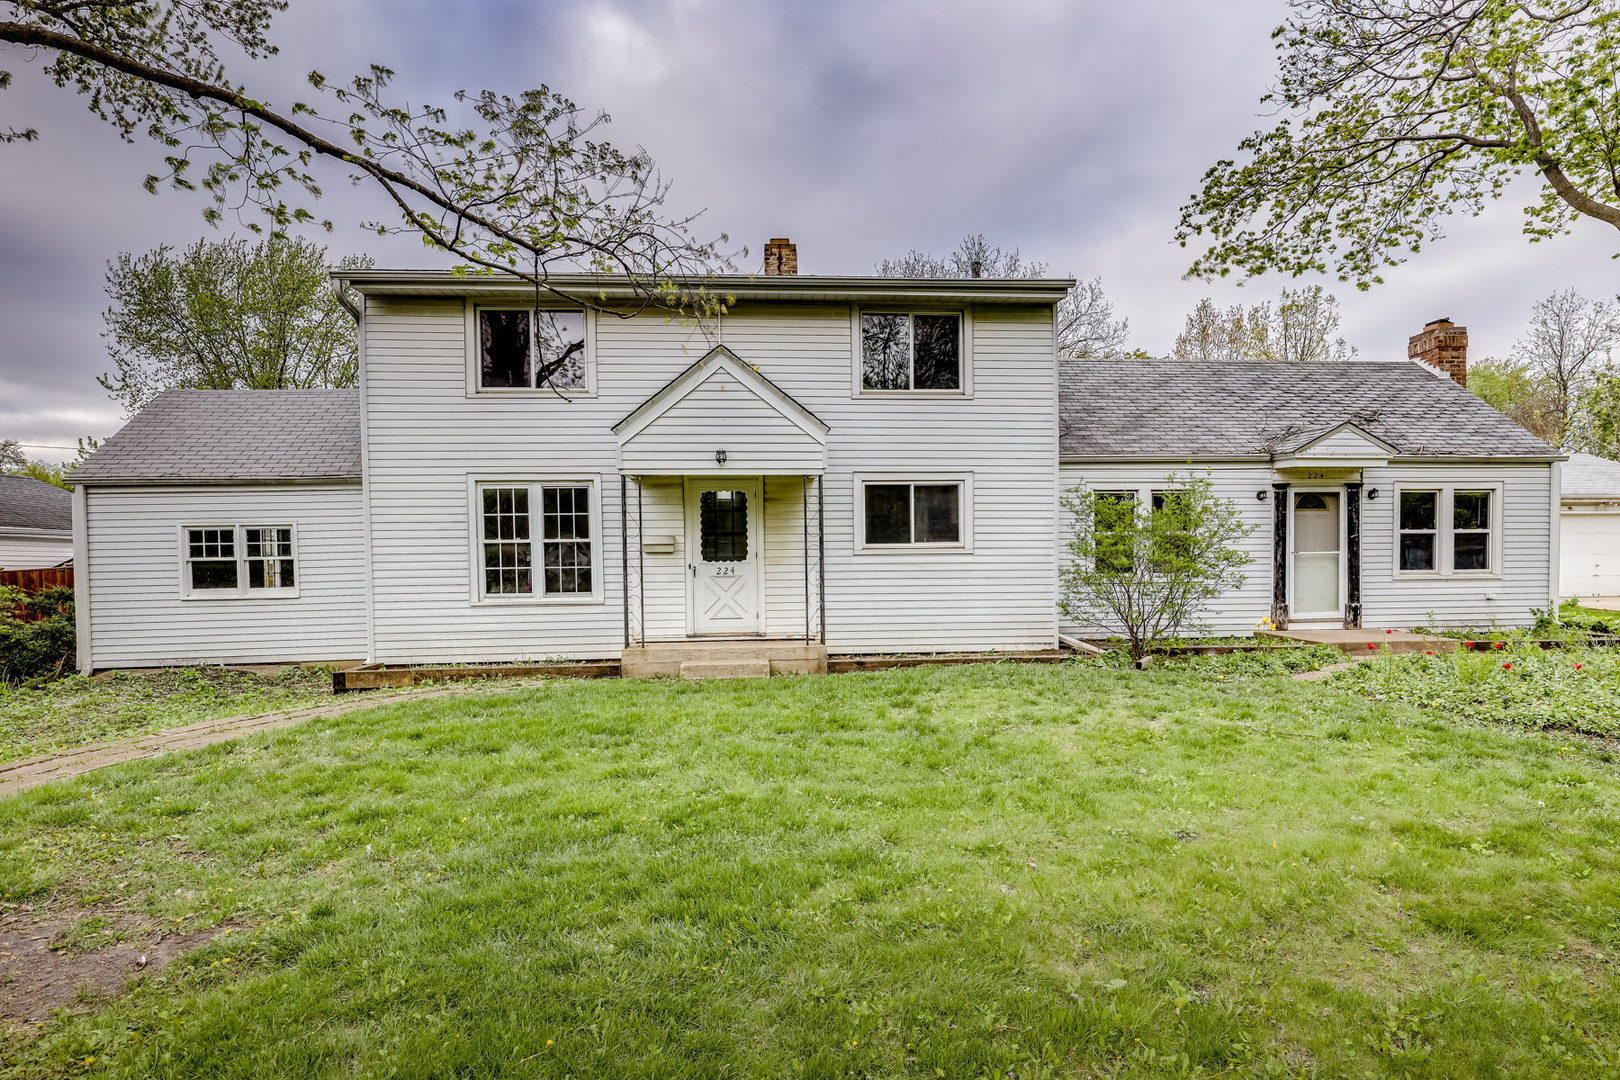 126X216 - MOTIVATED SELLER, SO MAKE AN OFFER!!. YOUR DREAM HOME ON OVER 1/2 ACRE, LARGE GRASSY LOTS IN LOMBARD. OR IF YOU PREFER - BUILD TWO! THE FRONTAGE ALLOWS 2 LOTS & YOU CAN STILL HAVE YOUR HOUSE SET BACK FROM THE STREET, LOT IS 216 FT. DEEP. EASY TO GET TO COMMUTER TRAIN & PARK, CLOSE TO DOWNTOWN LOMBARD WITH FOOD, DRINK, FESTIVALS & ACTIVITIES. CONVENIENT TO EXPRESSWAYS PLUS LOCATED IN A GREAT NEIGHBORHOOD WITH GREAT SCHOOLS NEARBY. ZONED RESIDENTIAL. CALL TODAY!